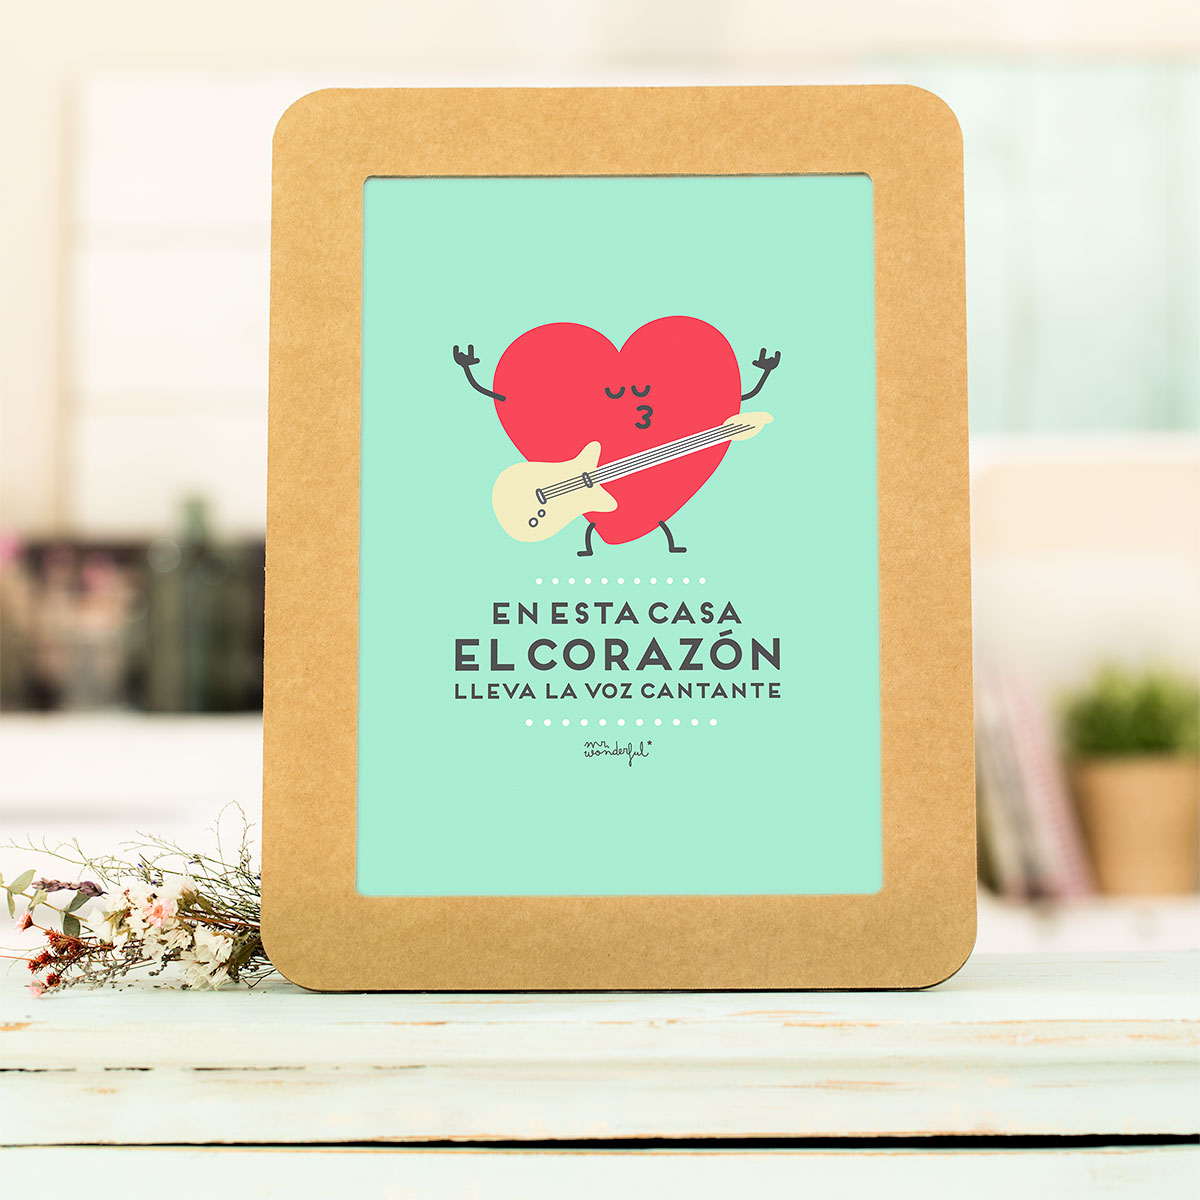 mrwonderful_LAM-RELIEVE-13-MARCO_casa-corazon-lleva